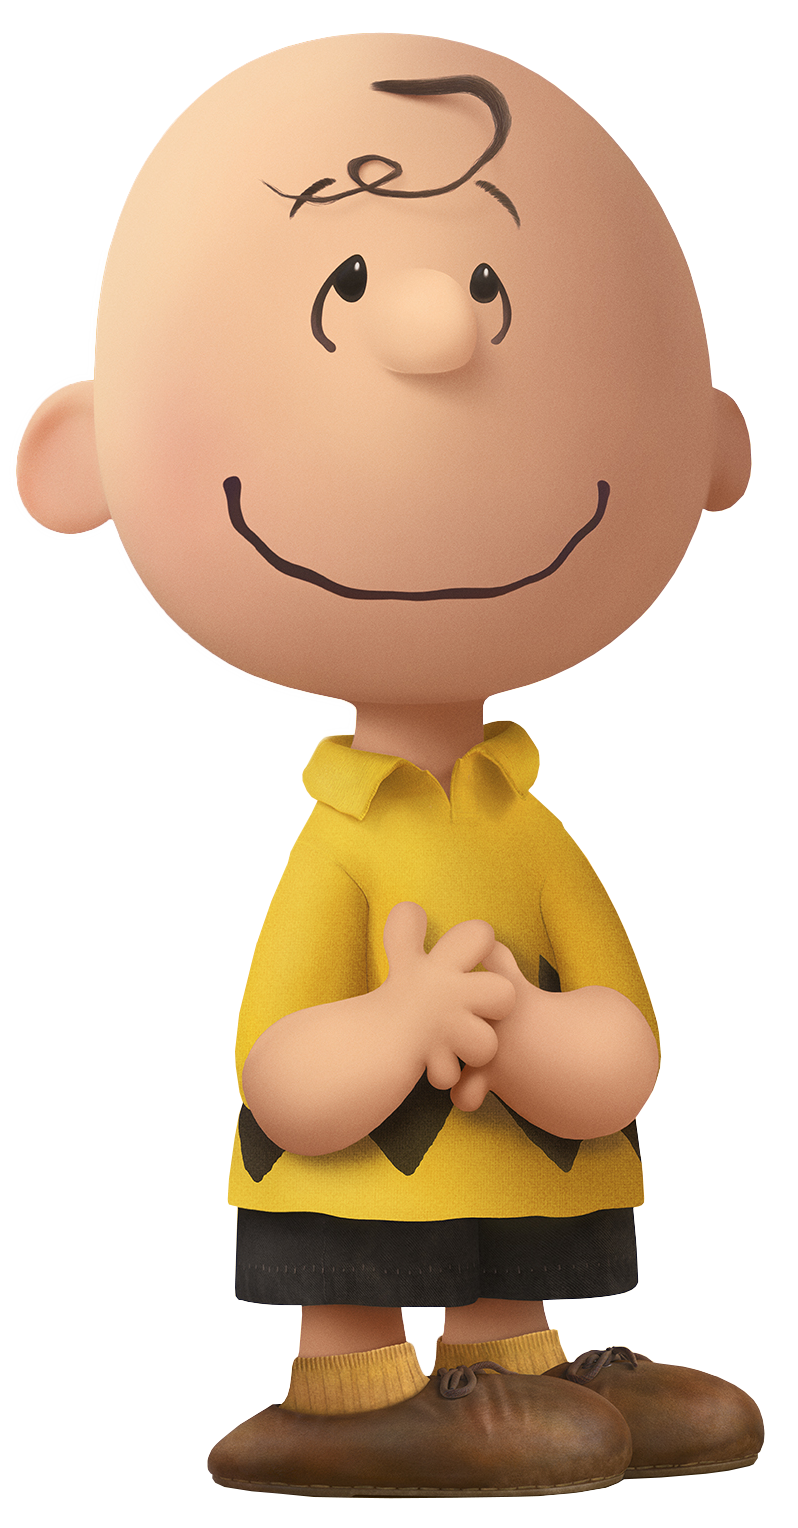 Charlie brown the movie. Peanuts clipart transparent background